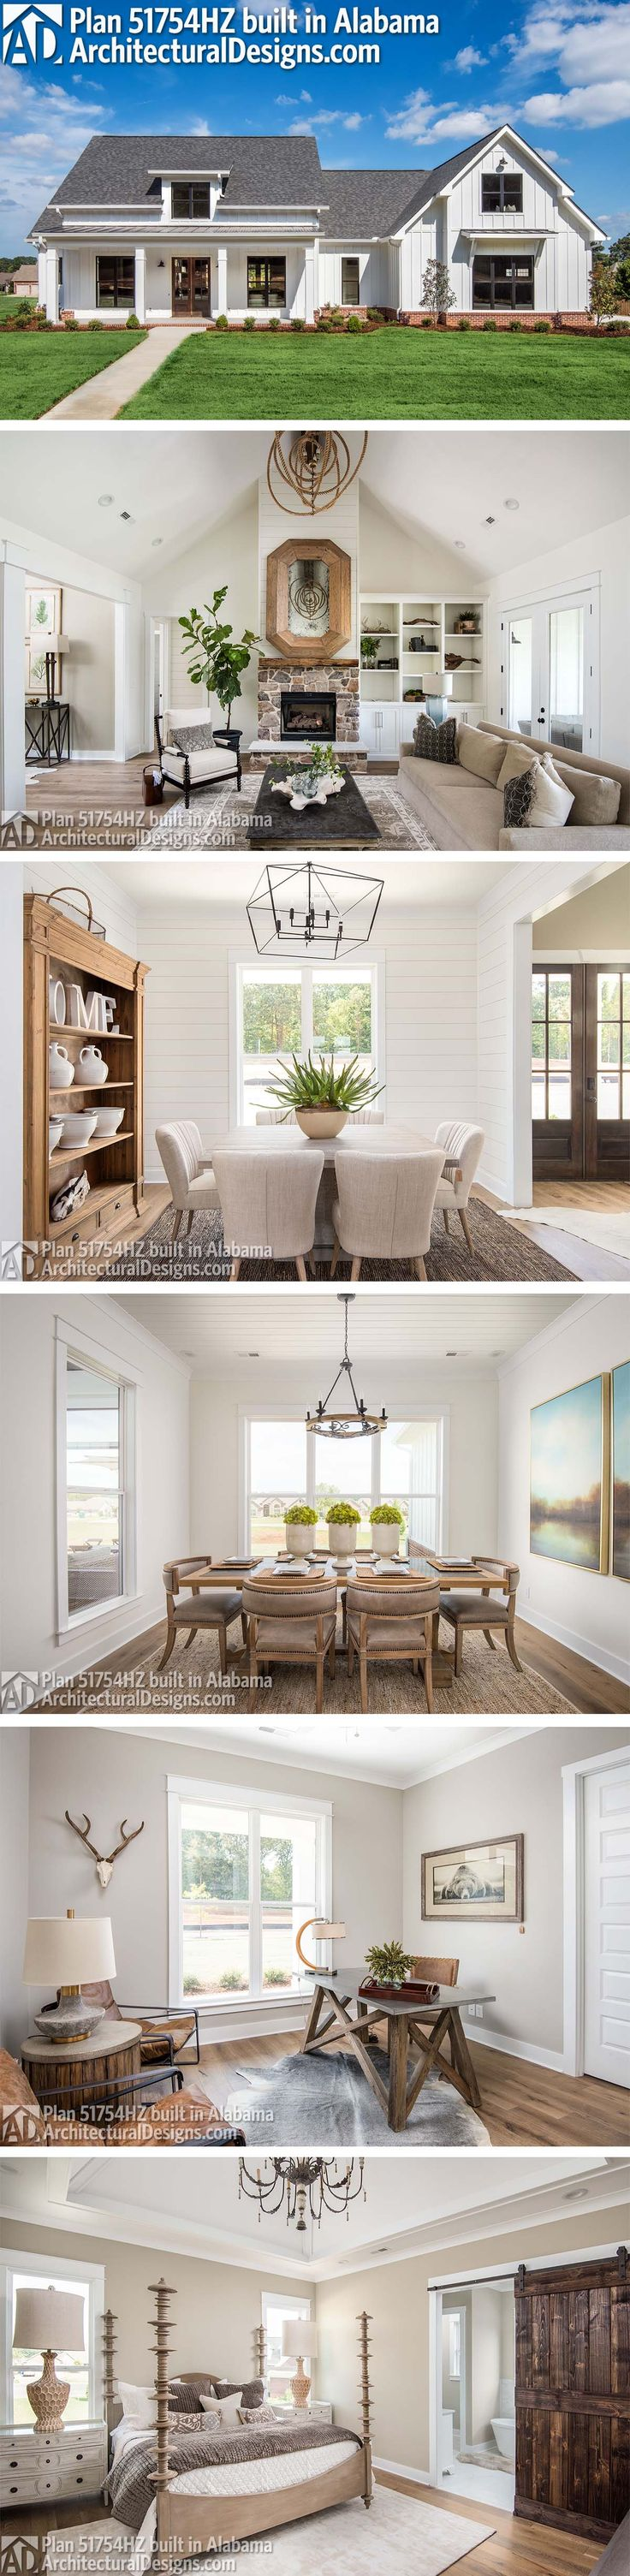 best Houses images on Pinterest  Future house Cottage and